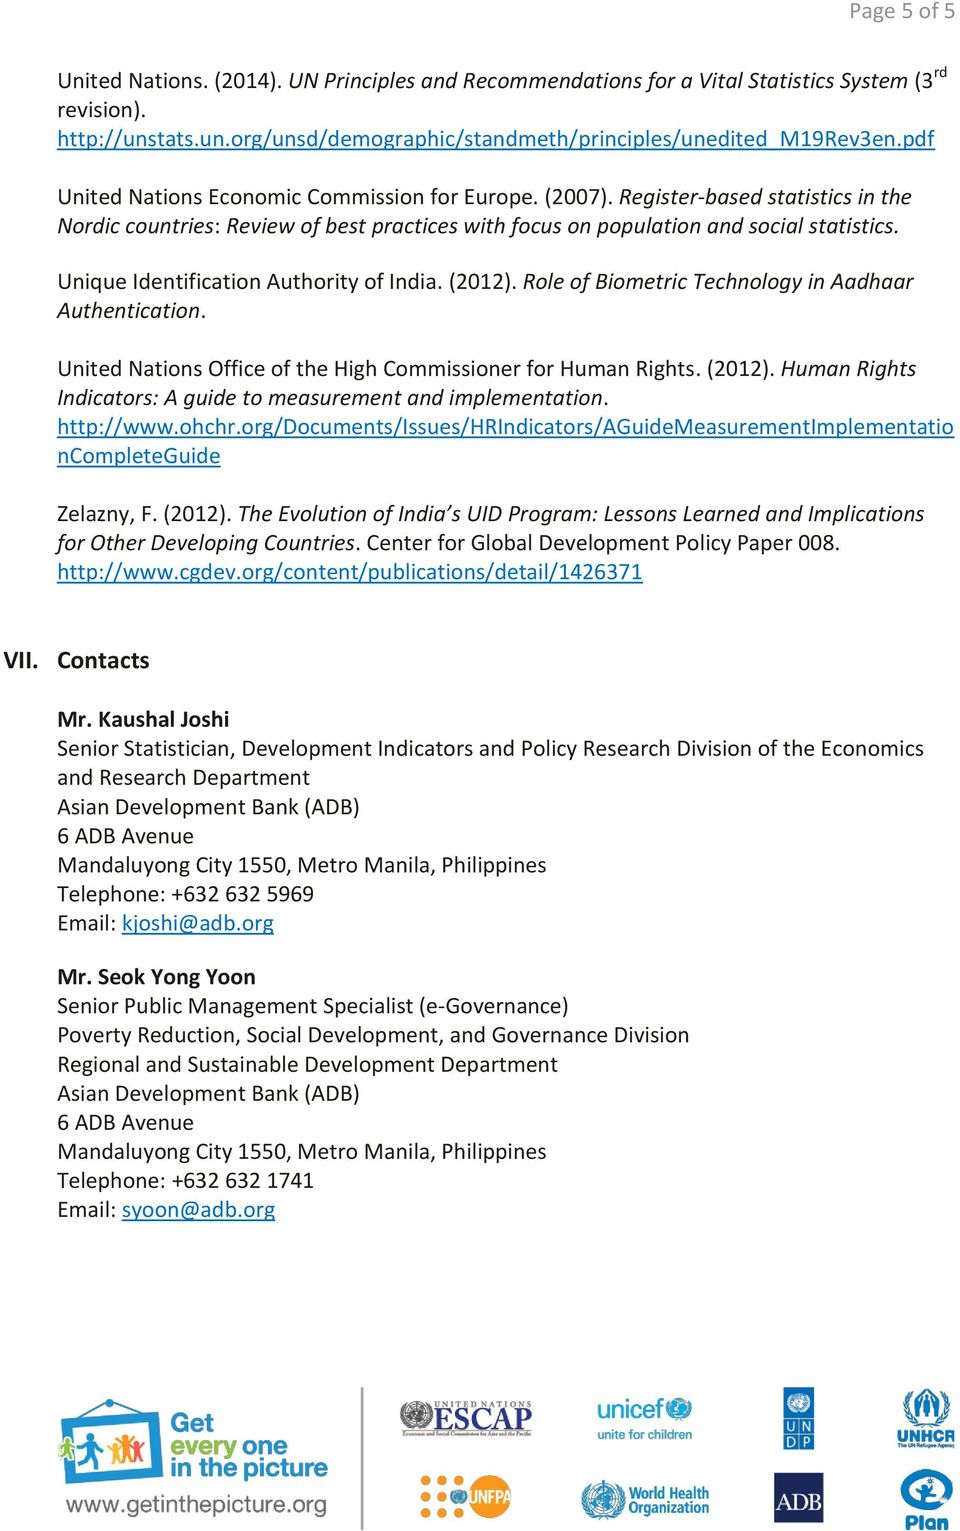 Unique Identification Authority of India. (2012). Role of Biometric Technology in Aadhaar Authentication. United Nations Office of the High Commissioner for Human Rights. (2012). Human Rights Indicators: A guide to measurement and implementation.